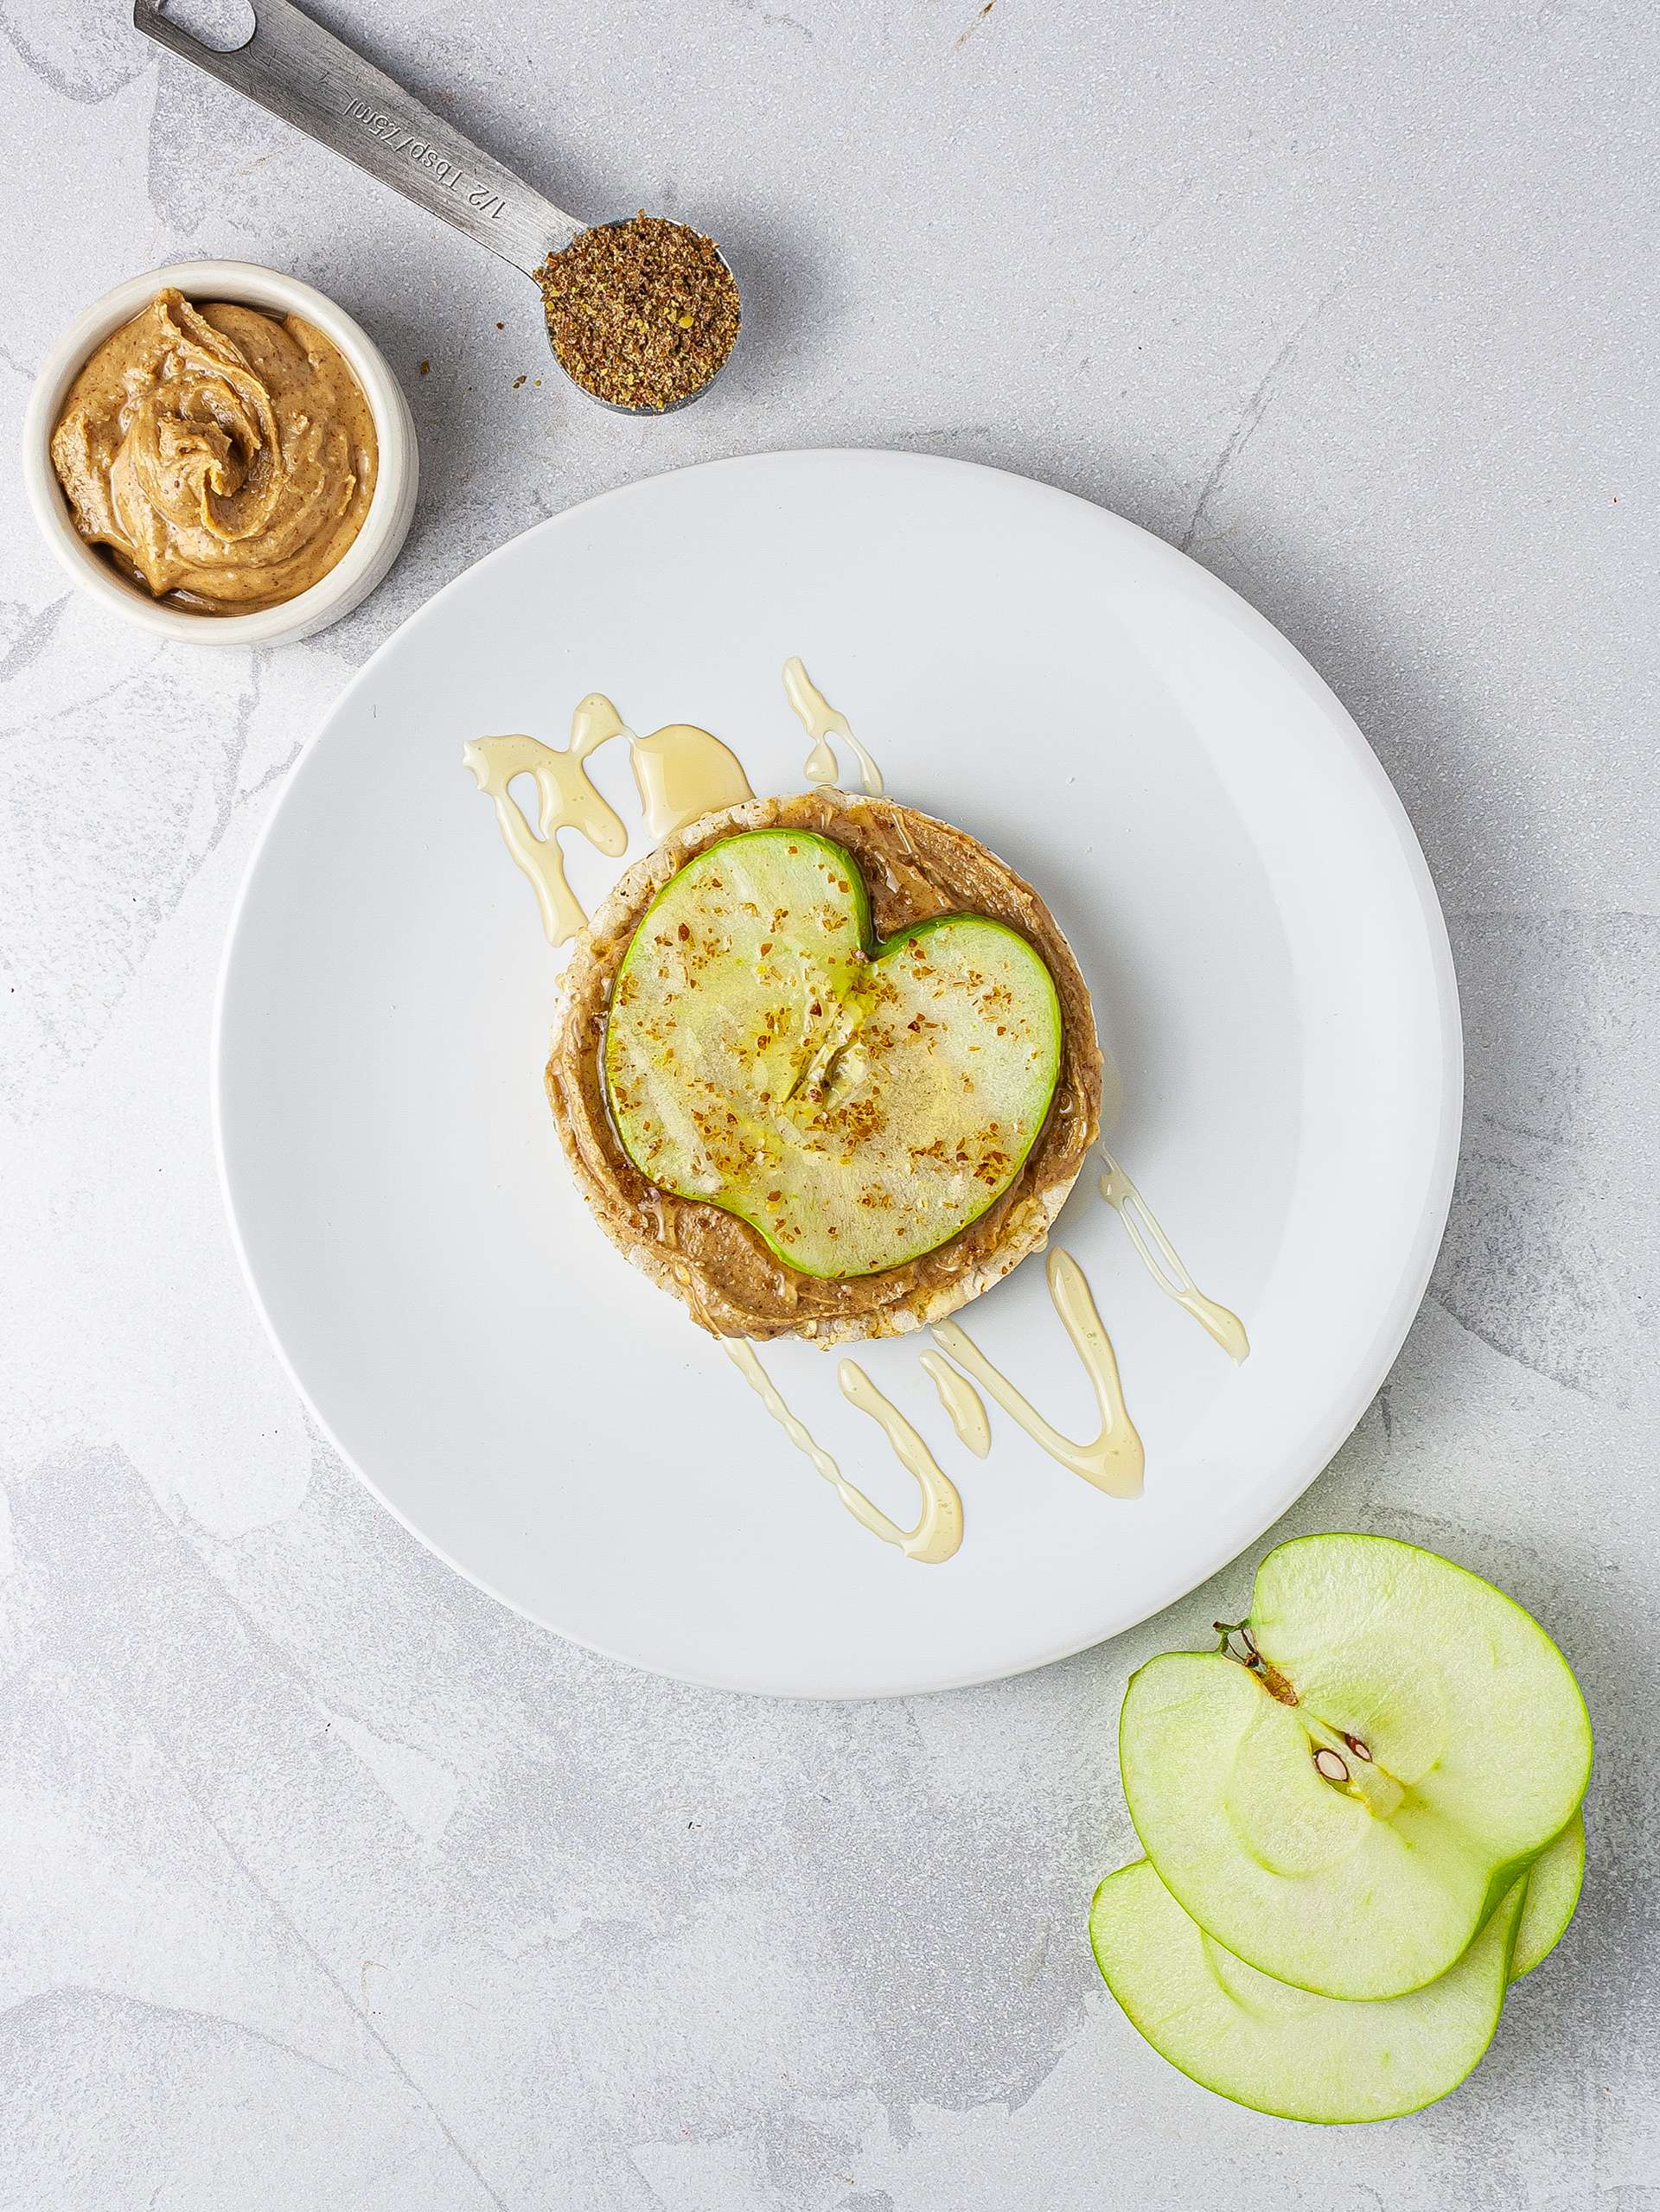 Rice cake with apple, maple syrup, and flaxseeds.